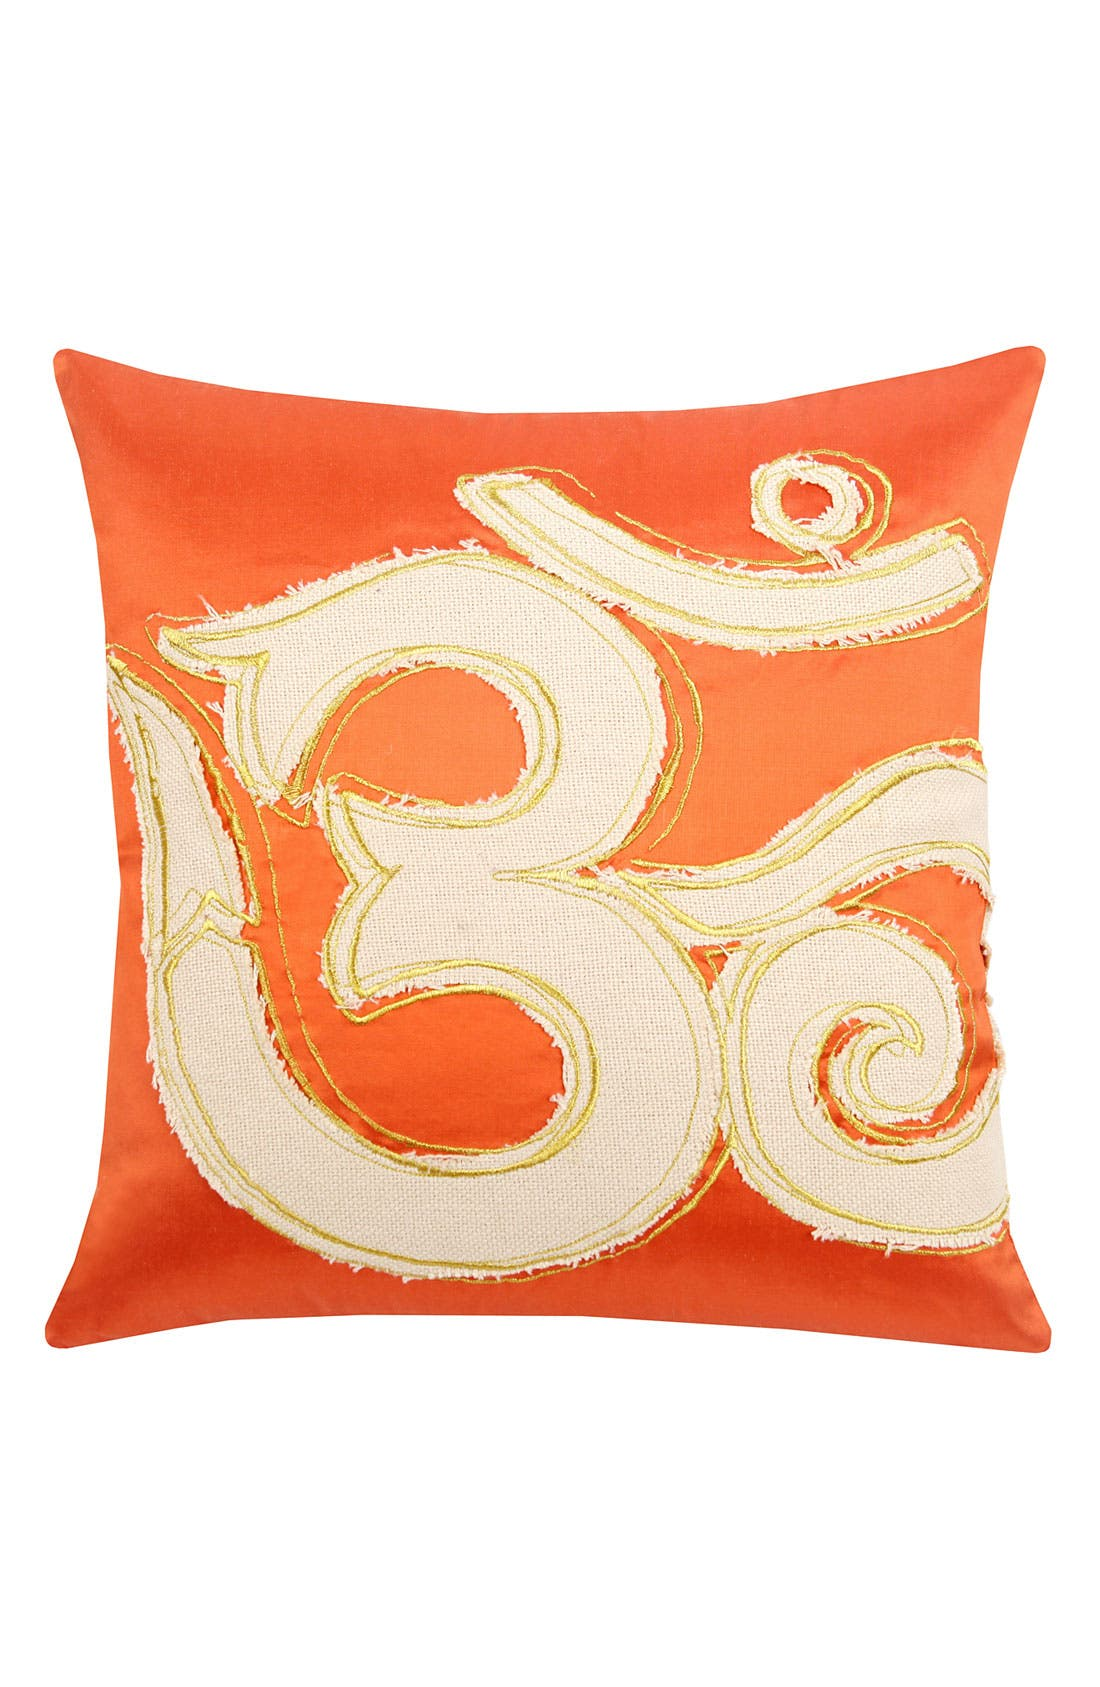 Main Image - Blissliving Home 'Om' Coral Pillow (Online Only)